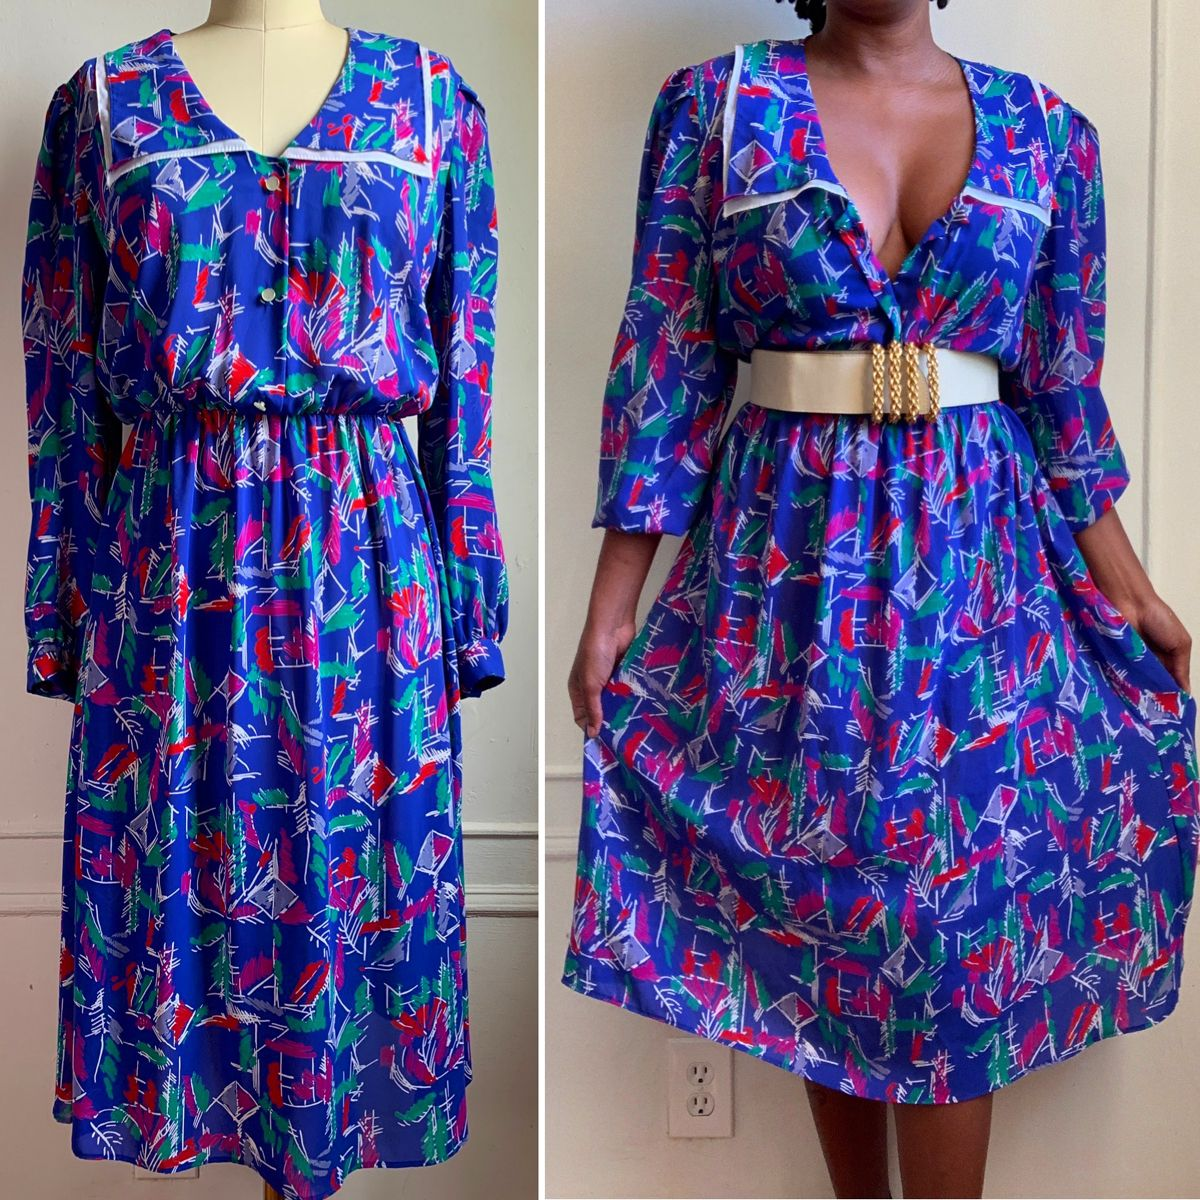 #vintagestyle #vintageclothes #thriftedfashion #thrifted #dress